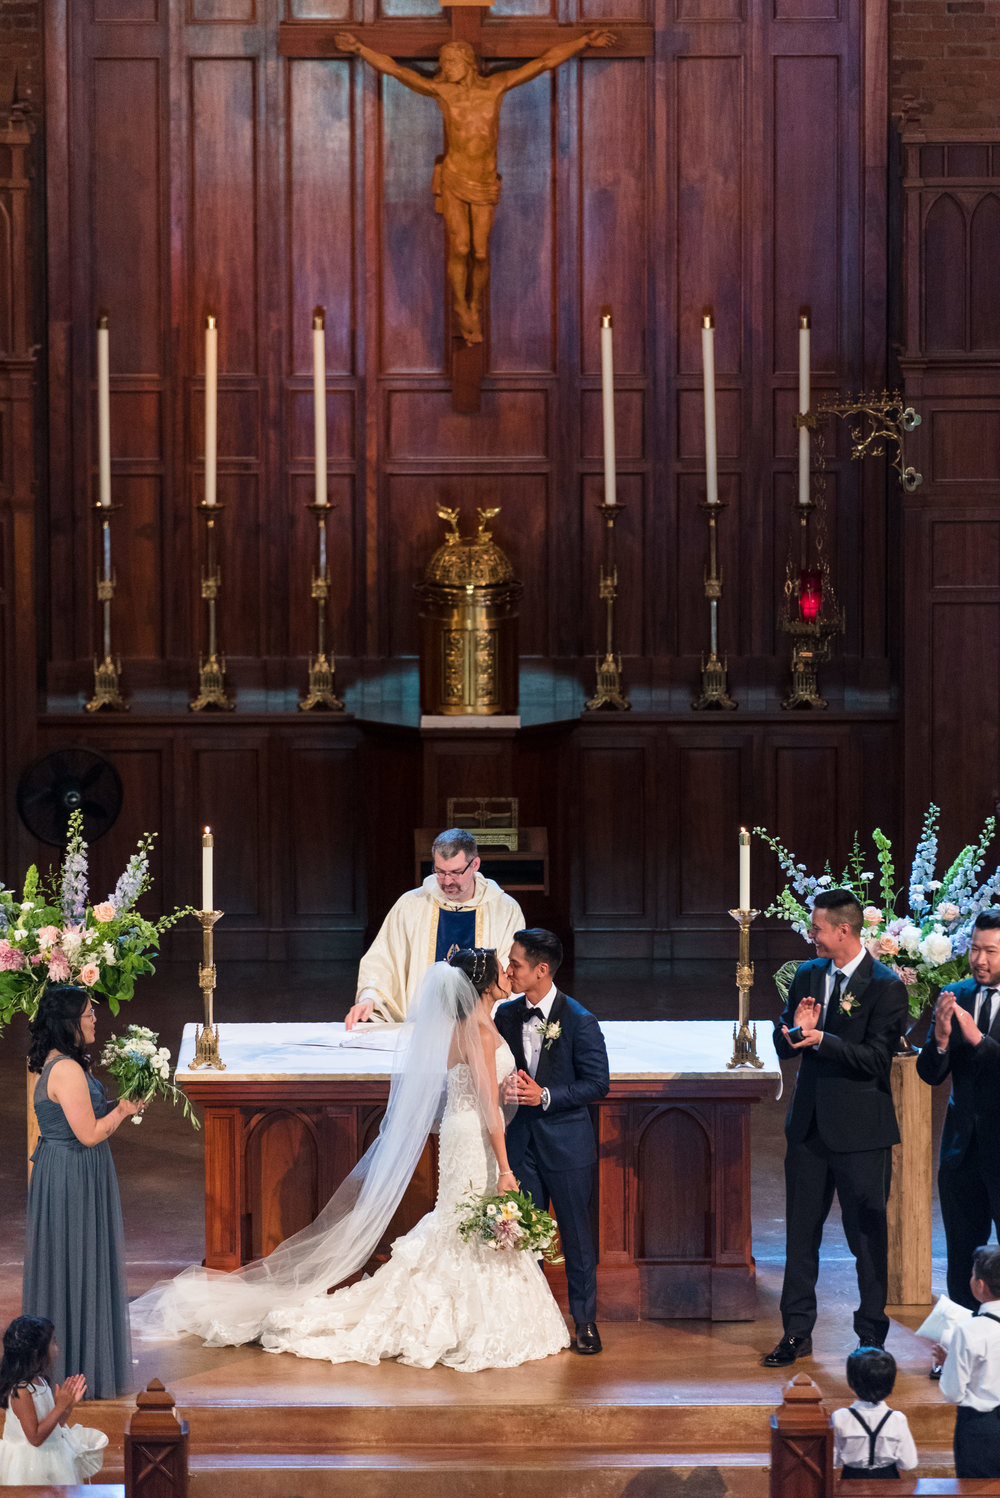 Kim and Allen Documentary Asian Wedding Ceremony at Blessed Sacrament Catholic Church in Seattle Washington